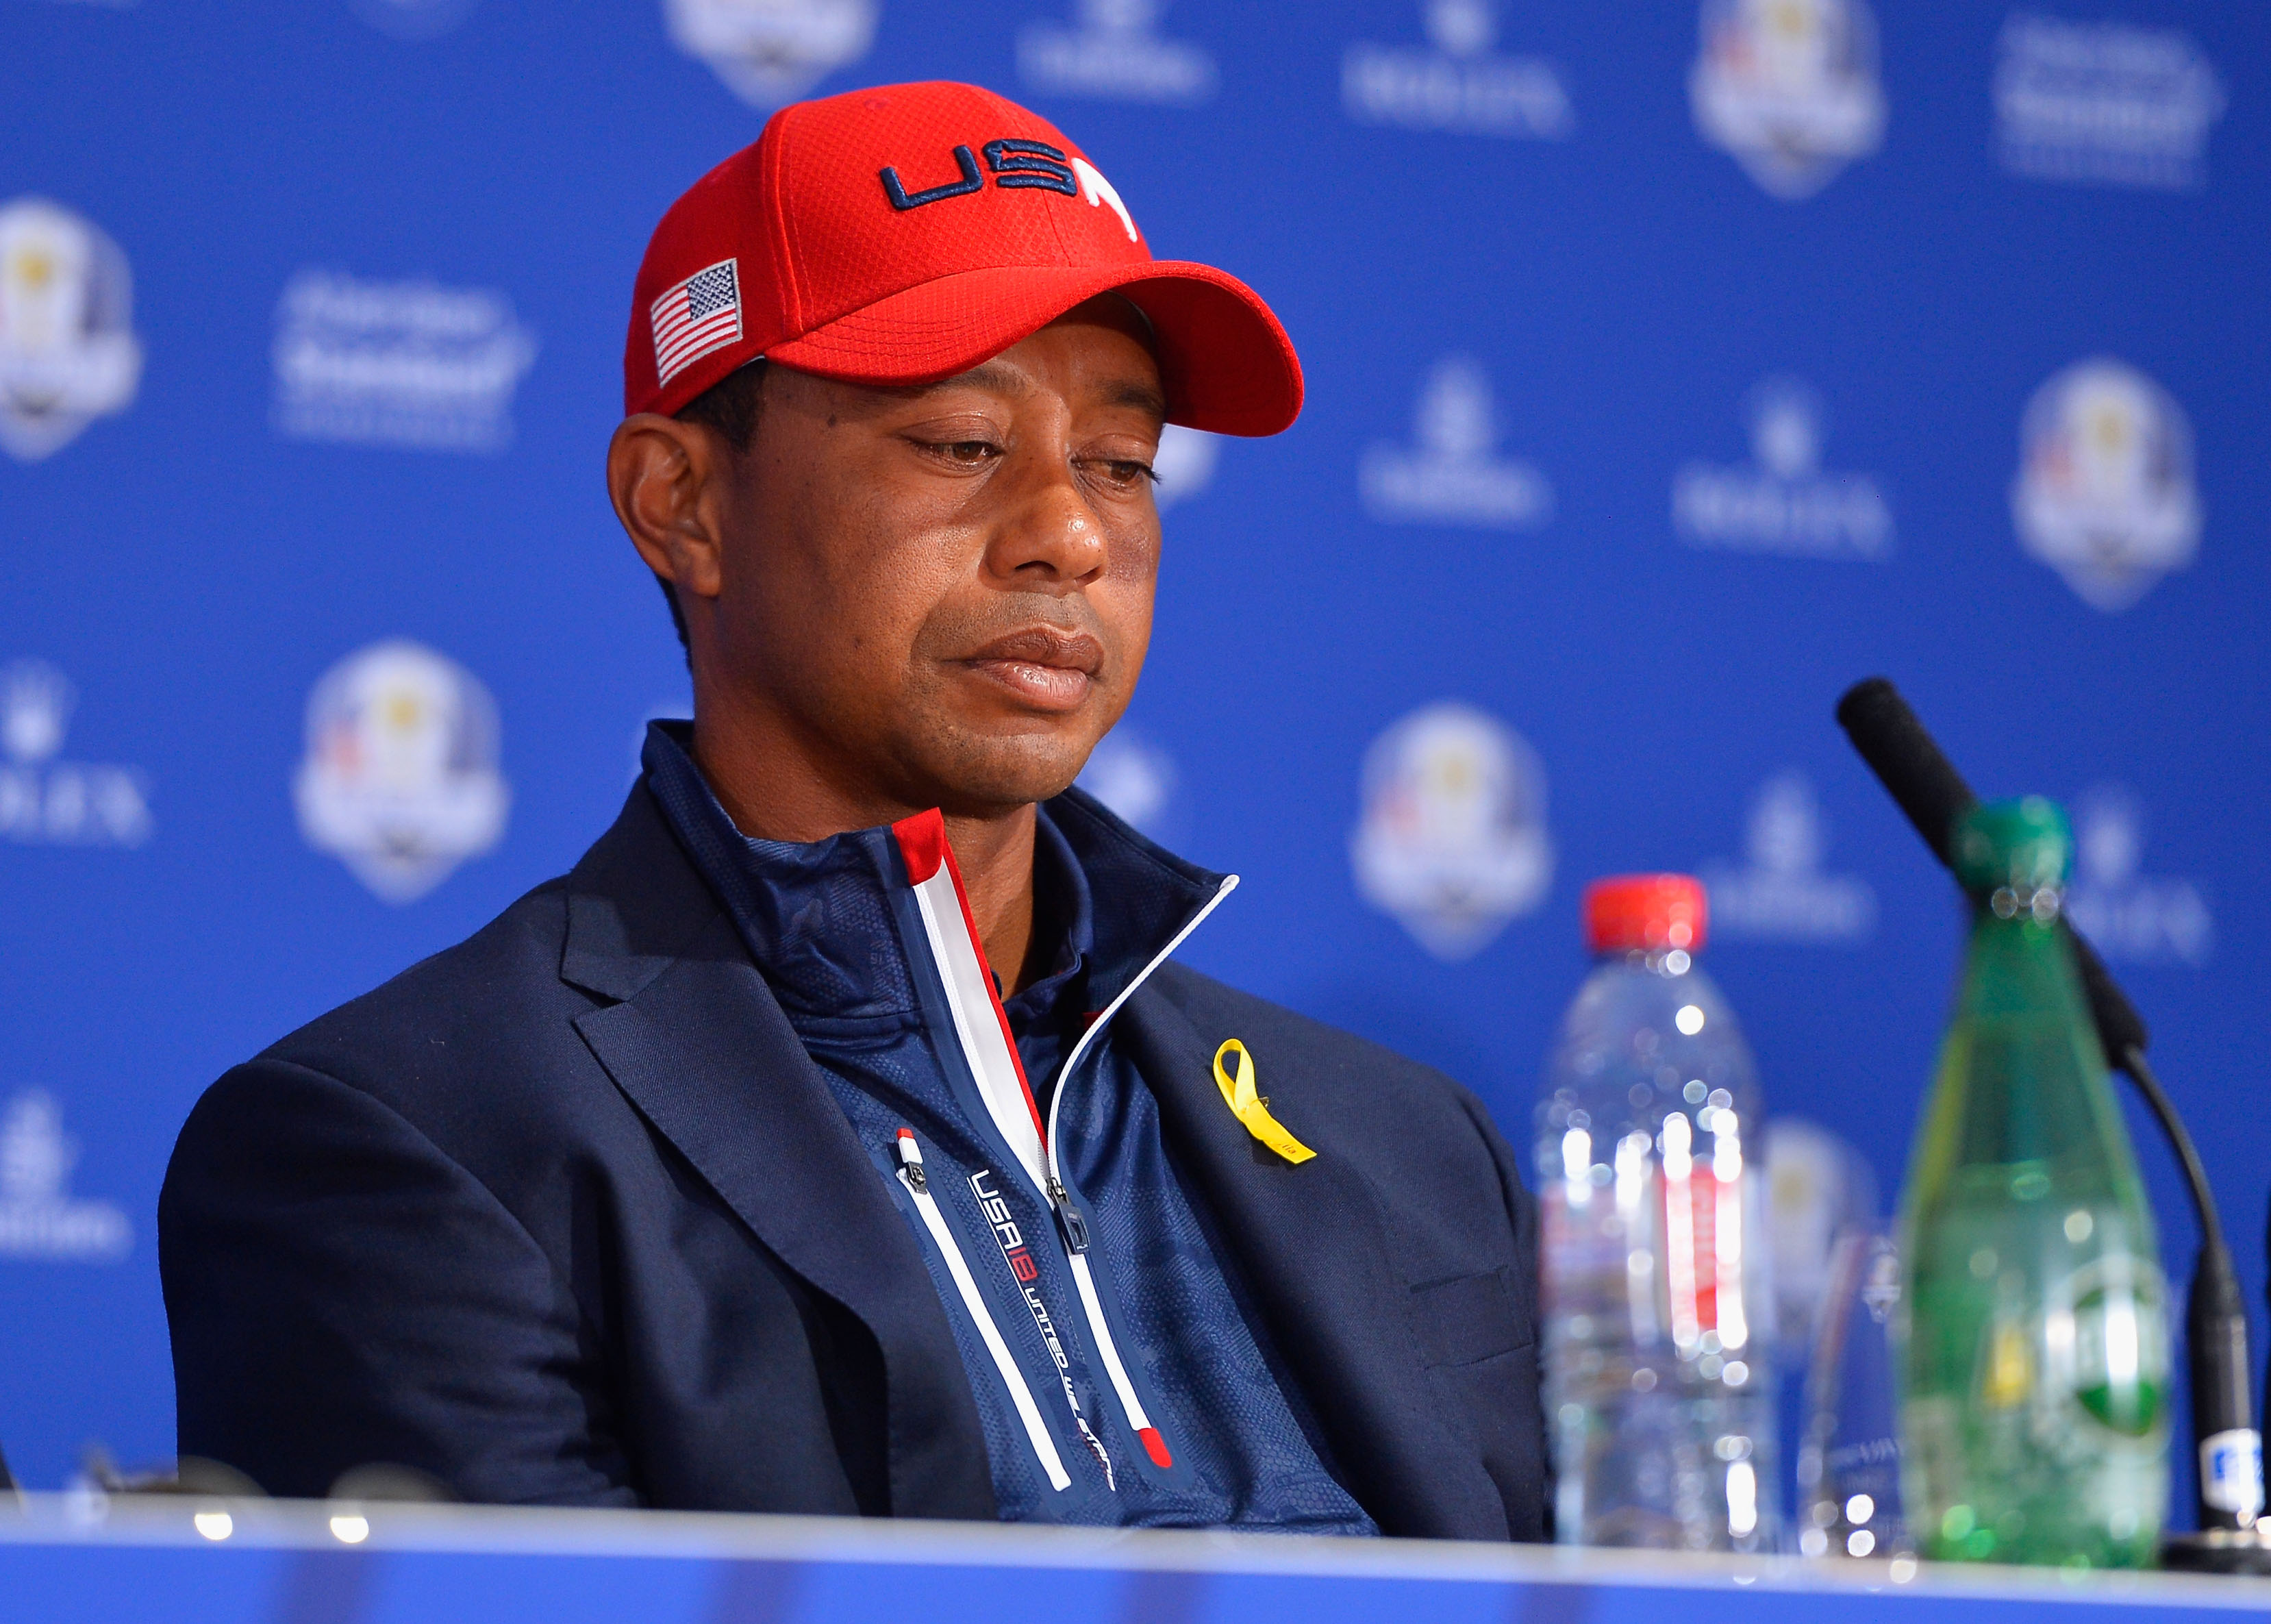 Tiger Woods at the 2018 Ryder Cup